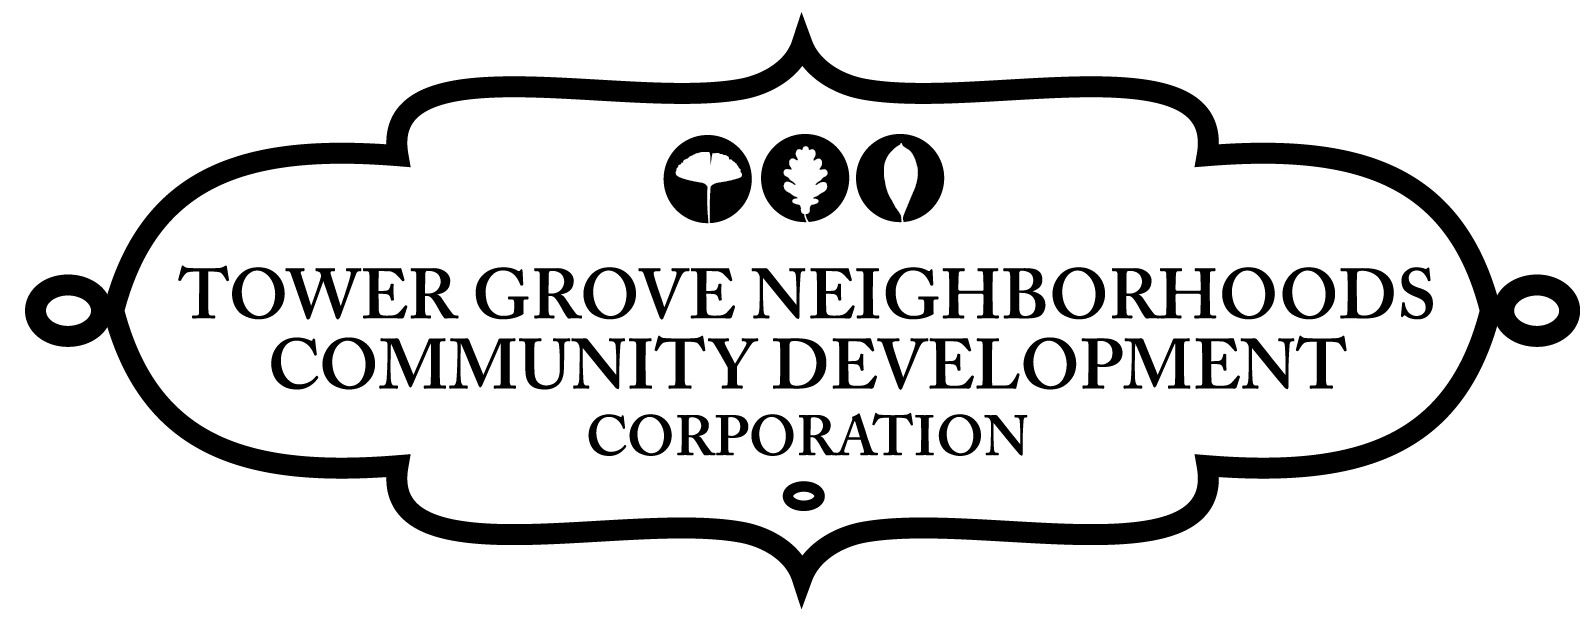 Tower Grove Neighborhoods Community Development Corporation